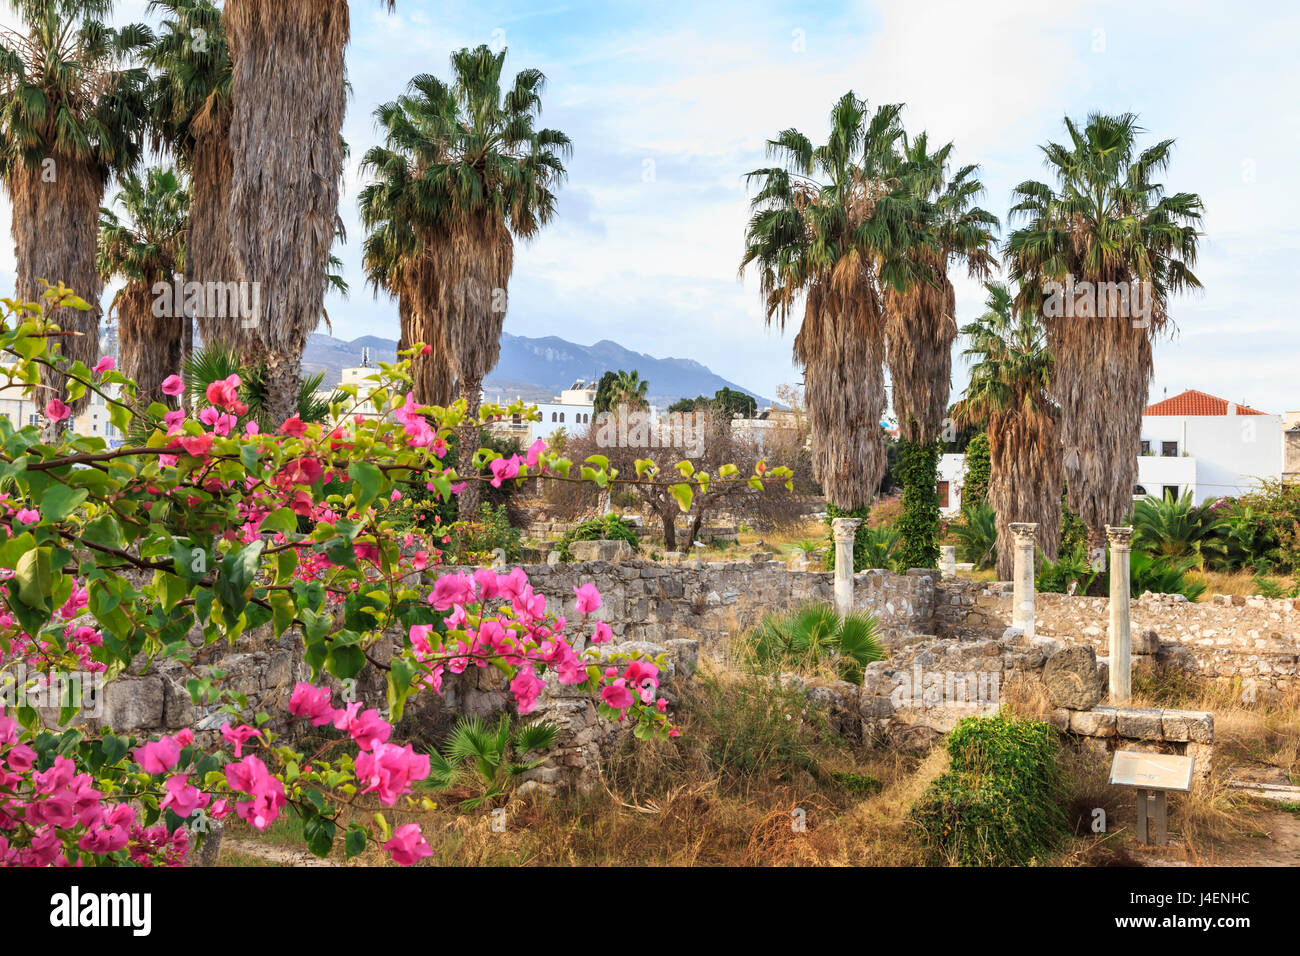 Ancient Agora, Bougainvillea and palm trees, Greek, Roman and Byzantine ruins, Kos Town, Kos, Dodecanese, Greek Islands, Greece Stock Photo